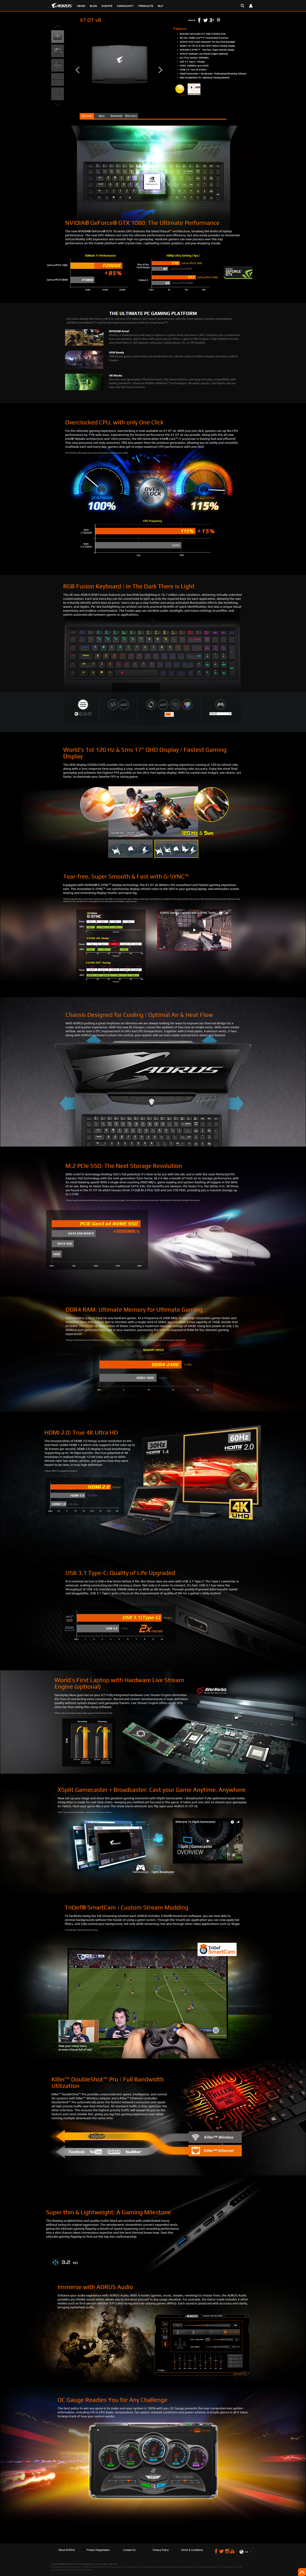 screencapture-aorus-product-detail-php-2018-05-09-16-22-16.png